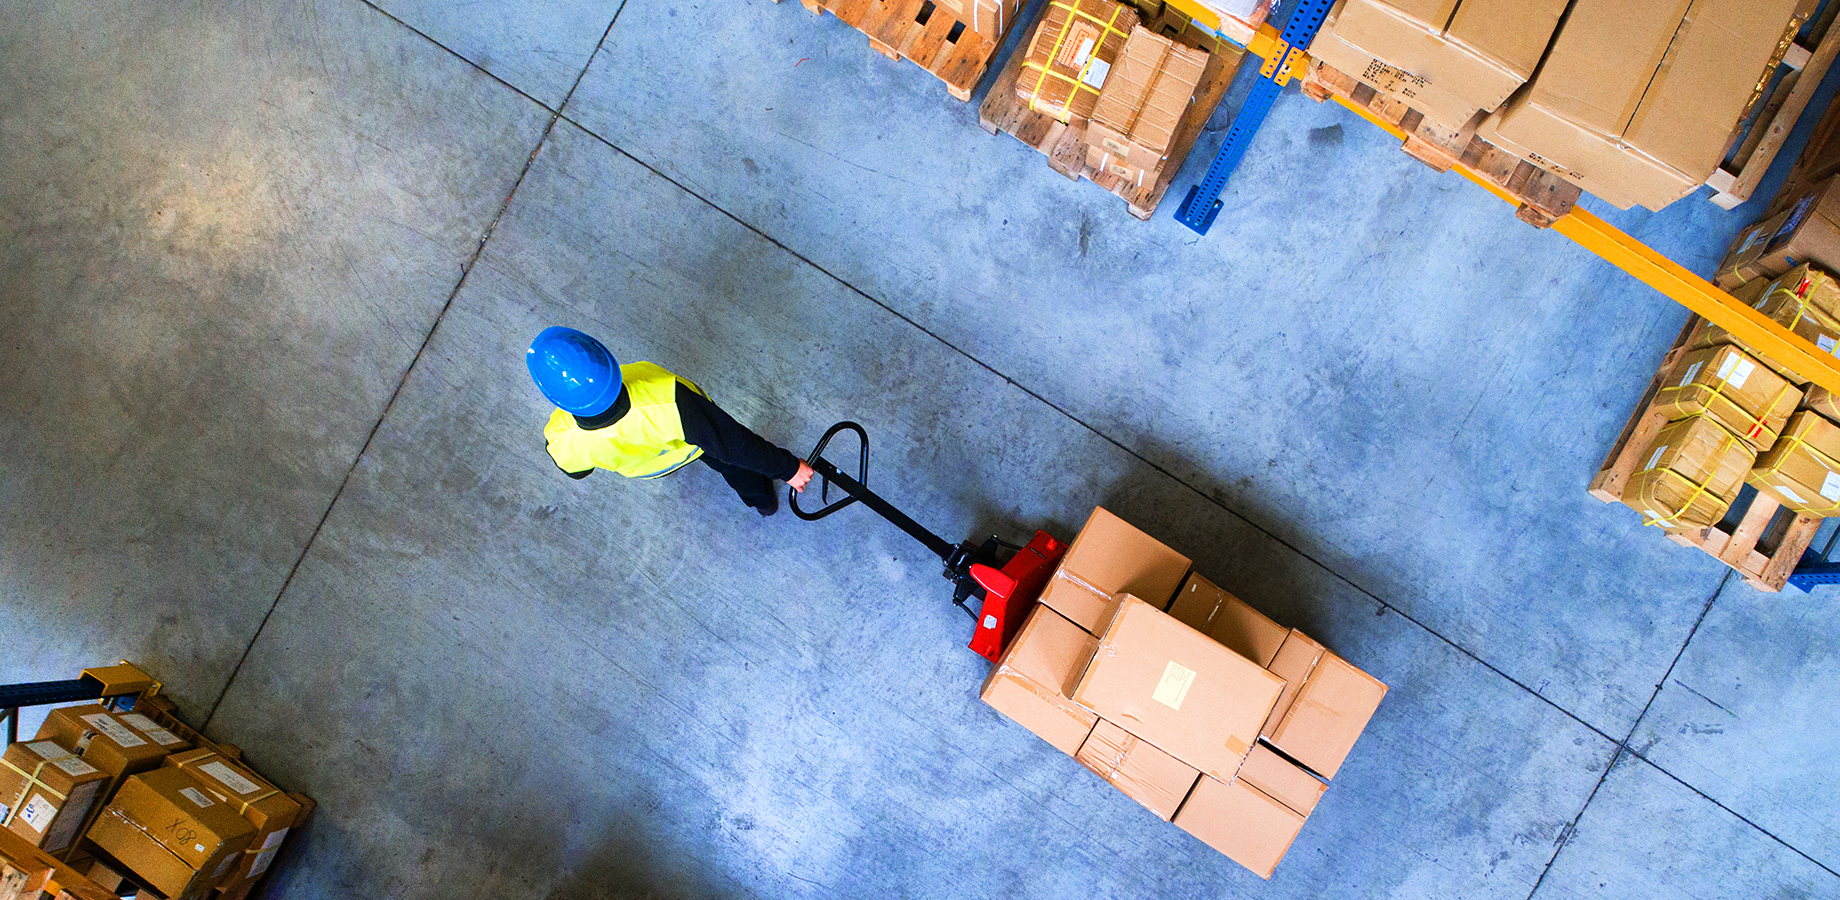 Man pulling a product cart in a distribution warehouse